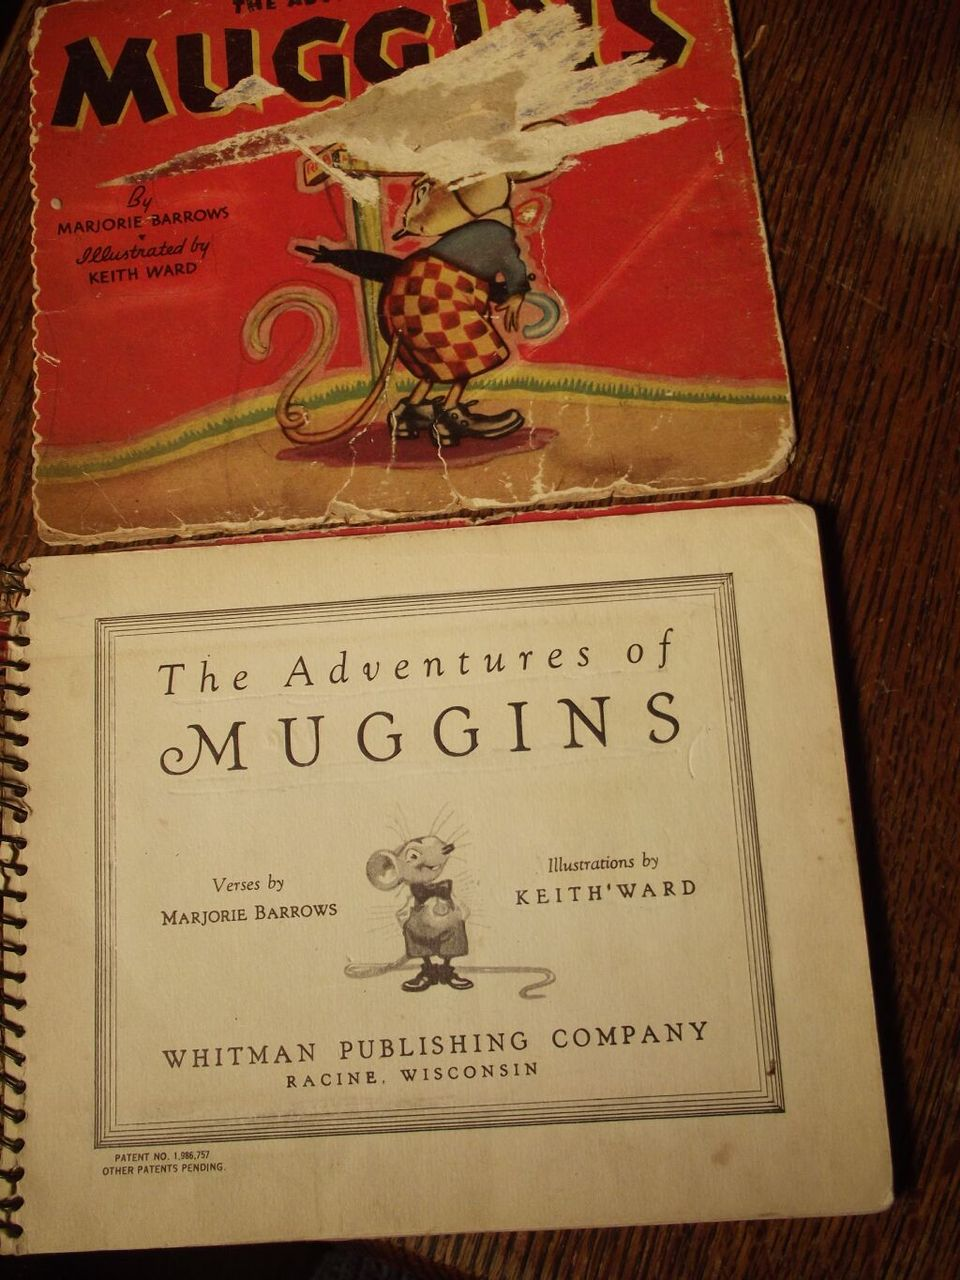 The Adventures of Muggins